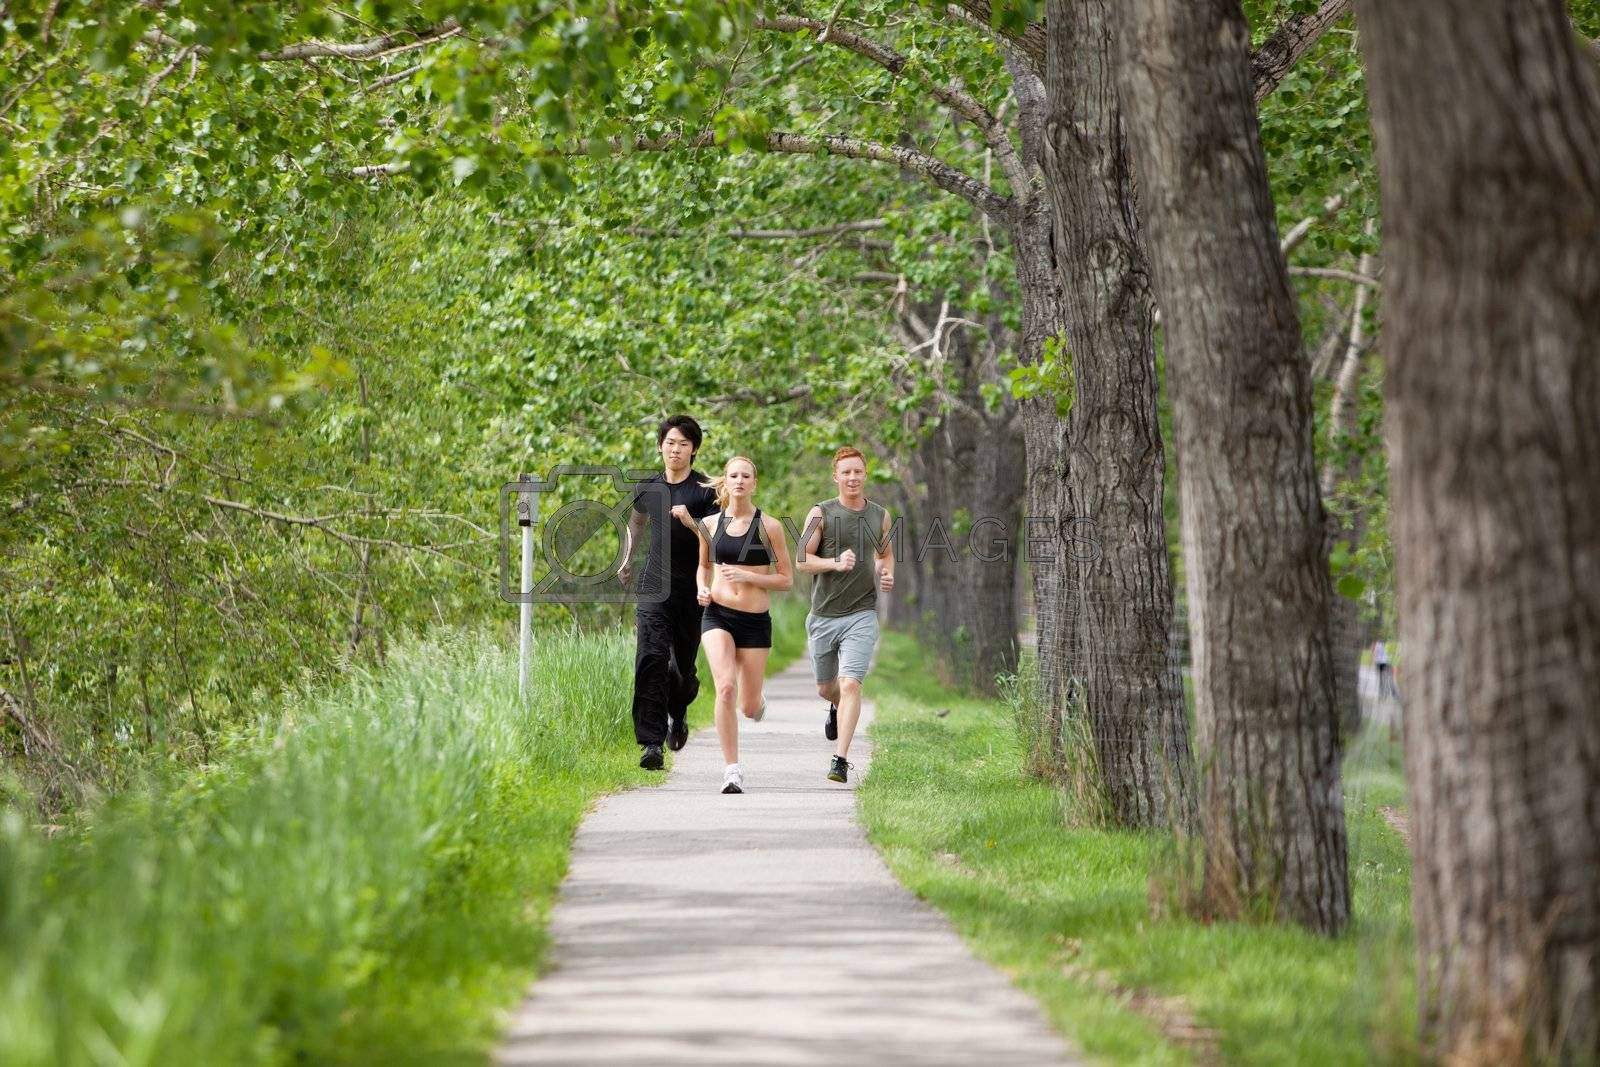 Young people running on walkway by trees